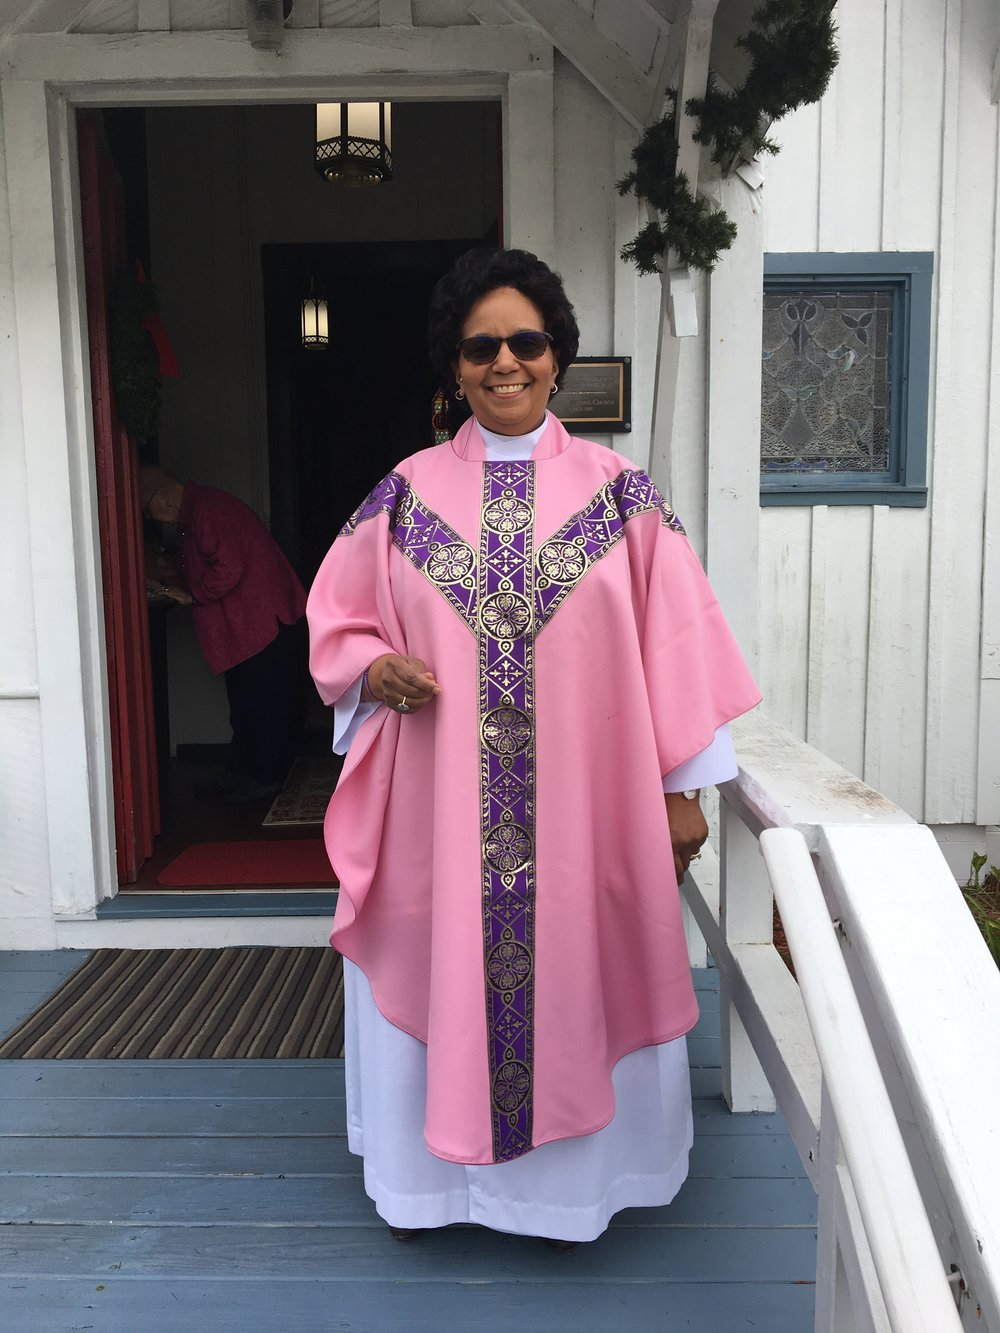 The Reverend Mother Michelle Roach